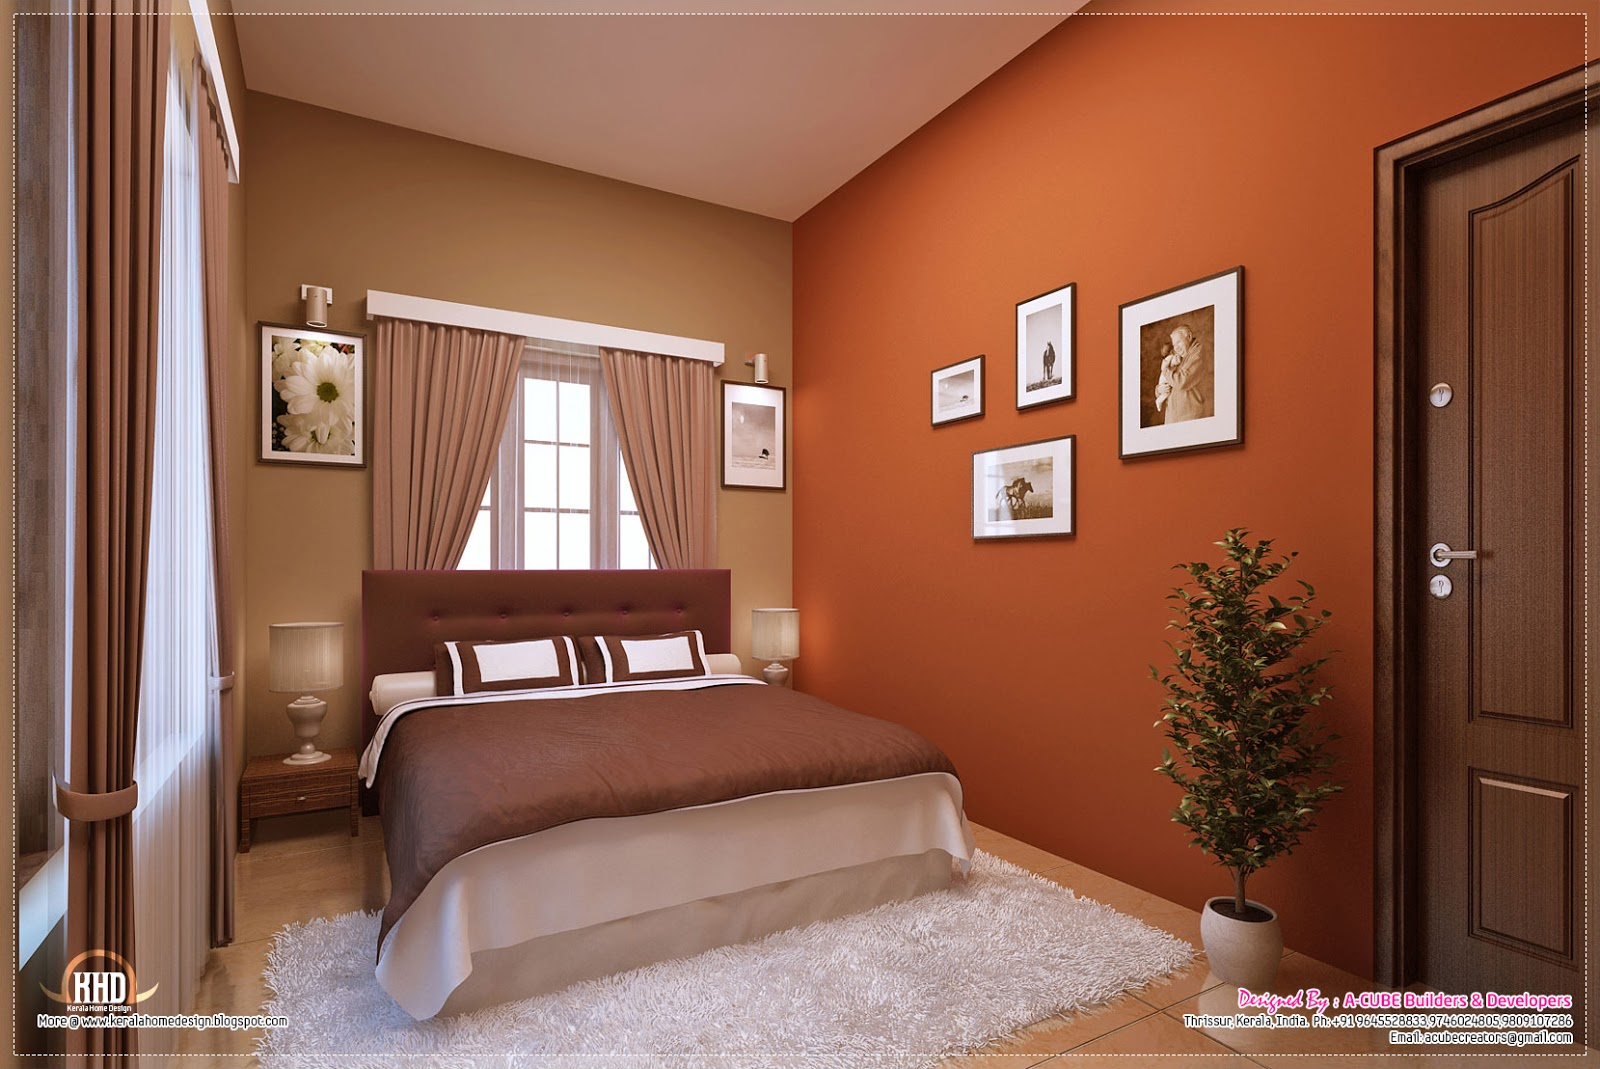 Awesome interior decoration ideas kerala home design and for House designs interior photos